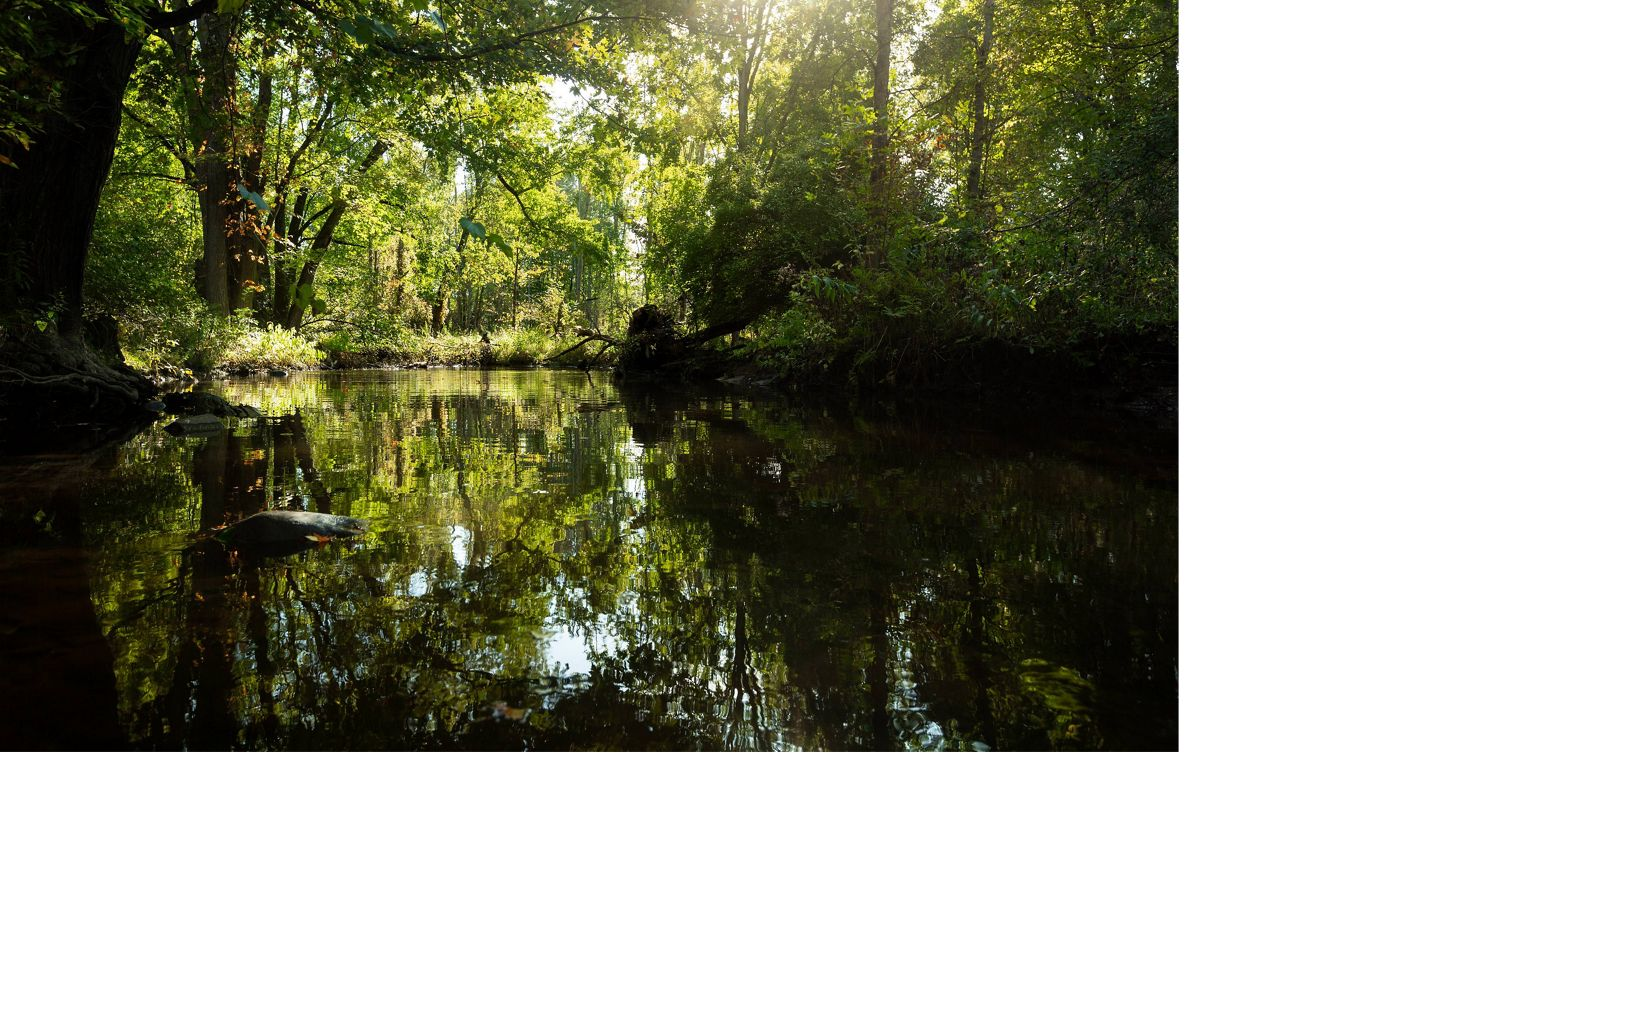 The Cass River in Michigan runs through farm country, providing sustenance and habitat to plants, animals, and people.